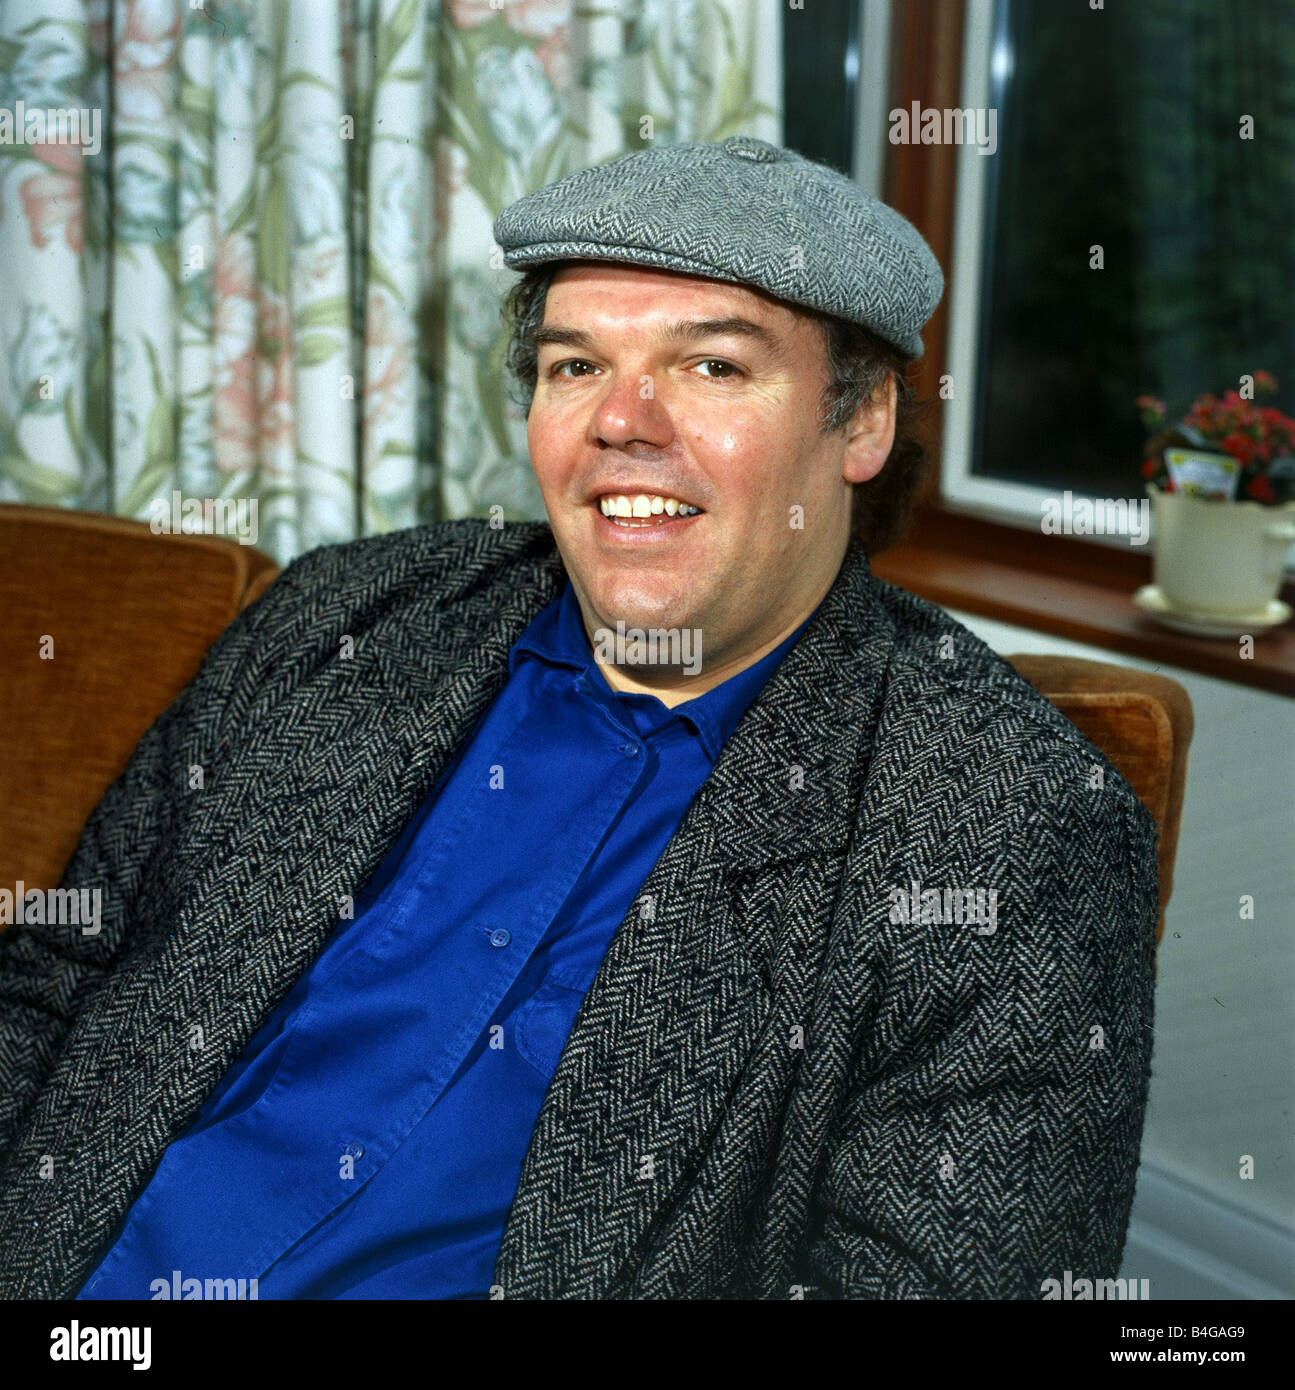 Consider, that Roy chubby brown lincoln